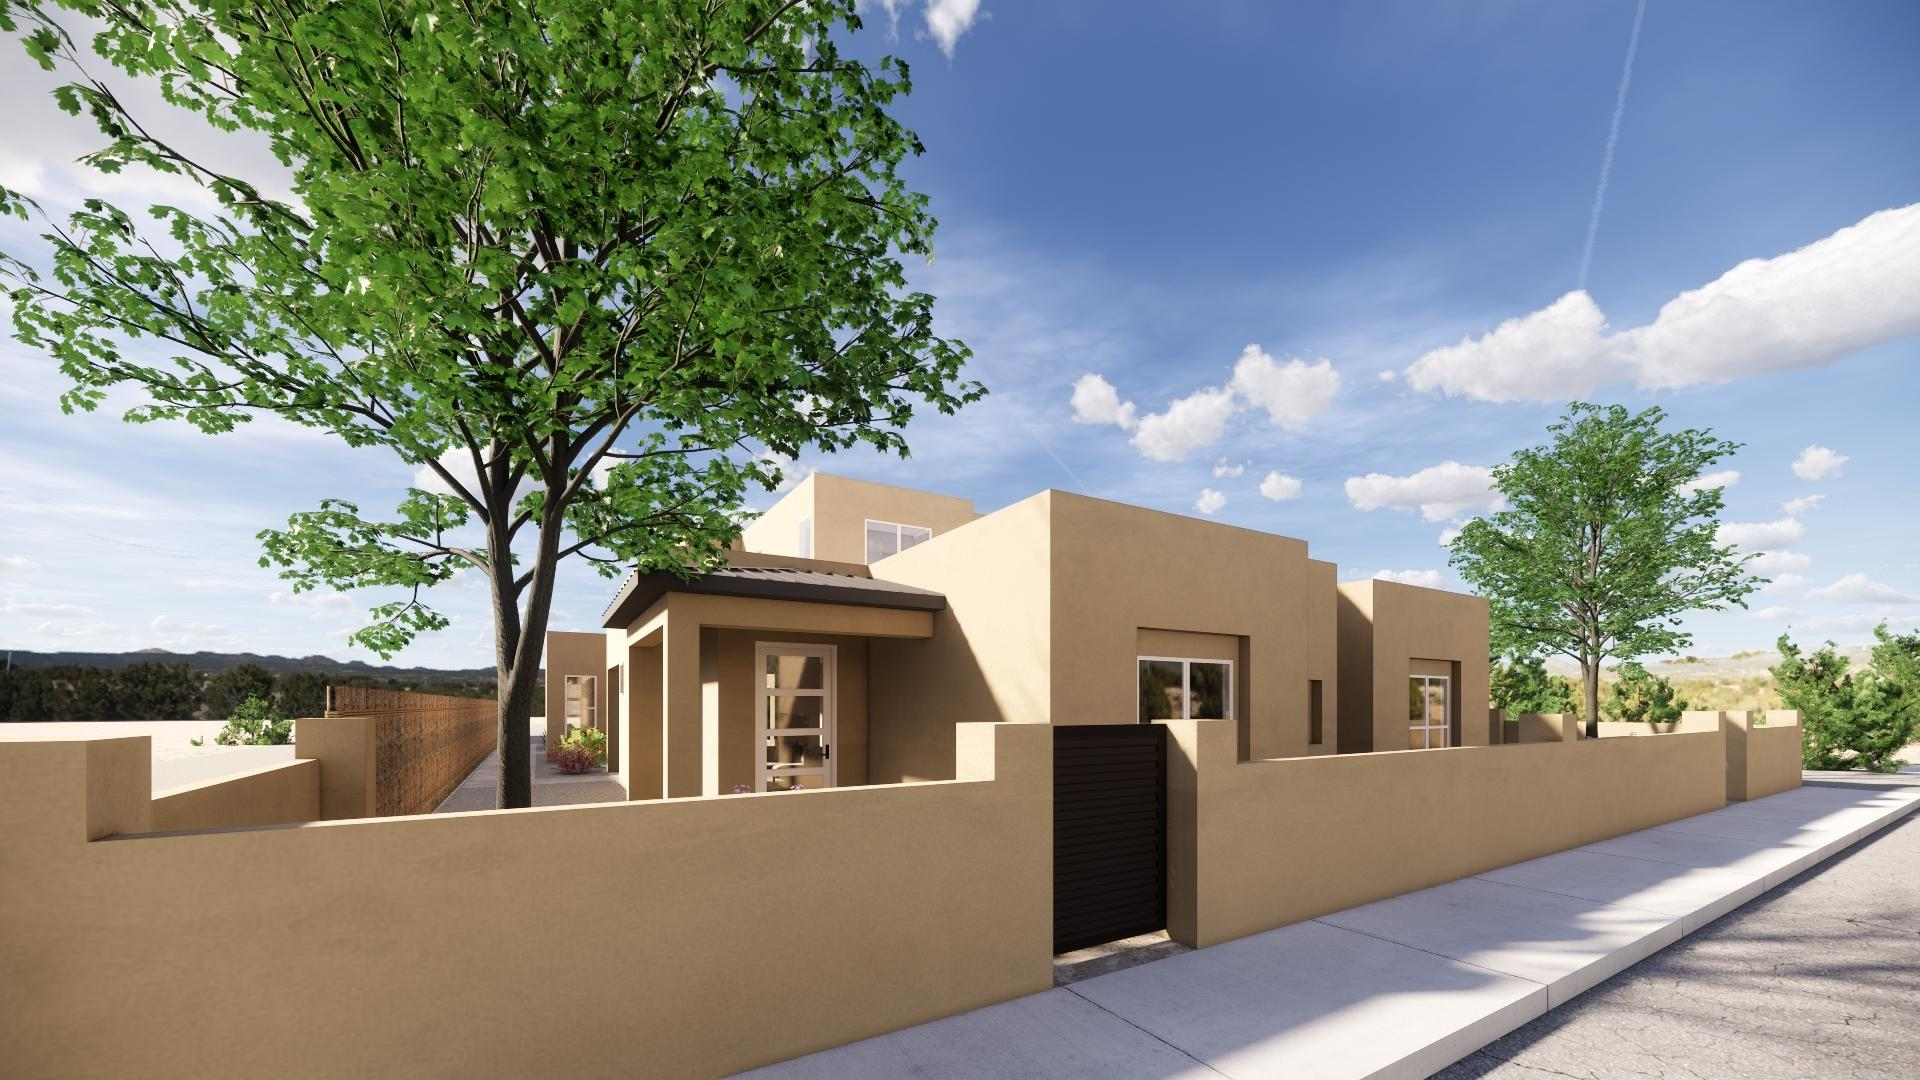 Proposed construction. Still haven't found the perfect home? Located with easy access to I-25 and neighbors to the Santa Fe Community College, this Townhome is ready to-be-built to what suits your style best! Check out the Video Tour now to see how the Open Floorplan will maximize the natural light and creates an inviting atmosphere! You'll notice your new home will have a beautiful kitchen that will boast a large island that looks out onto your covered Patio where you and your guests will gather to make memories! The kitchen also has stainless steel appliances, plenty of counter space and a pantry! With the master located on the main floor and it will be your favorite place to unwind! Outside, you'll find the patio will be the perfect place to enjoy the NM weather.  Two car garage.